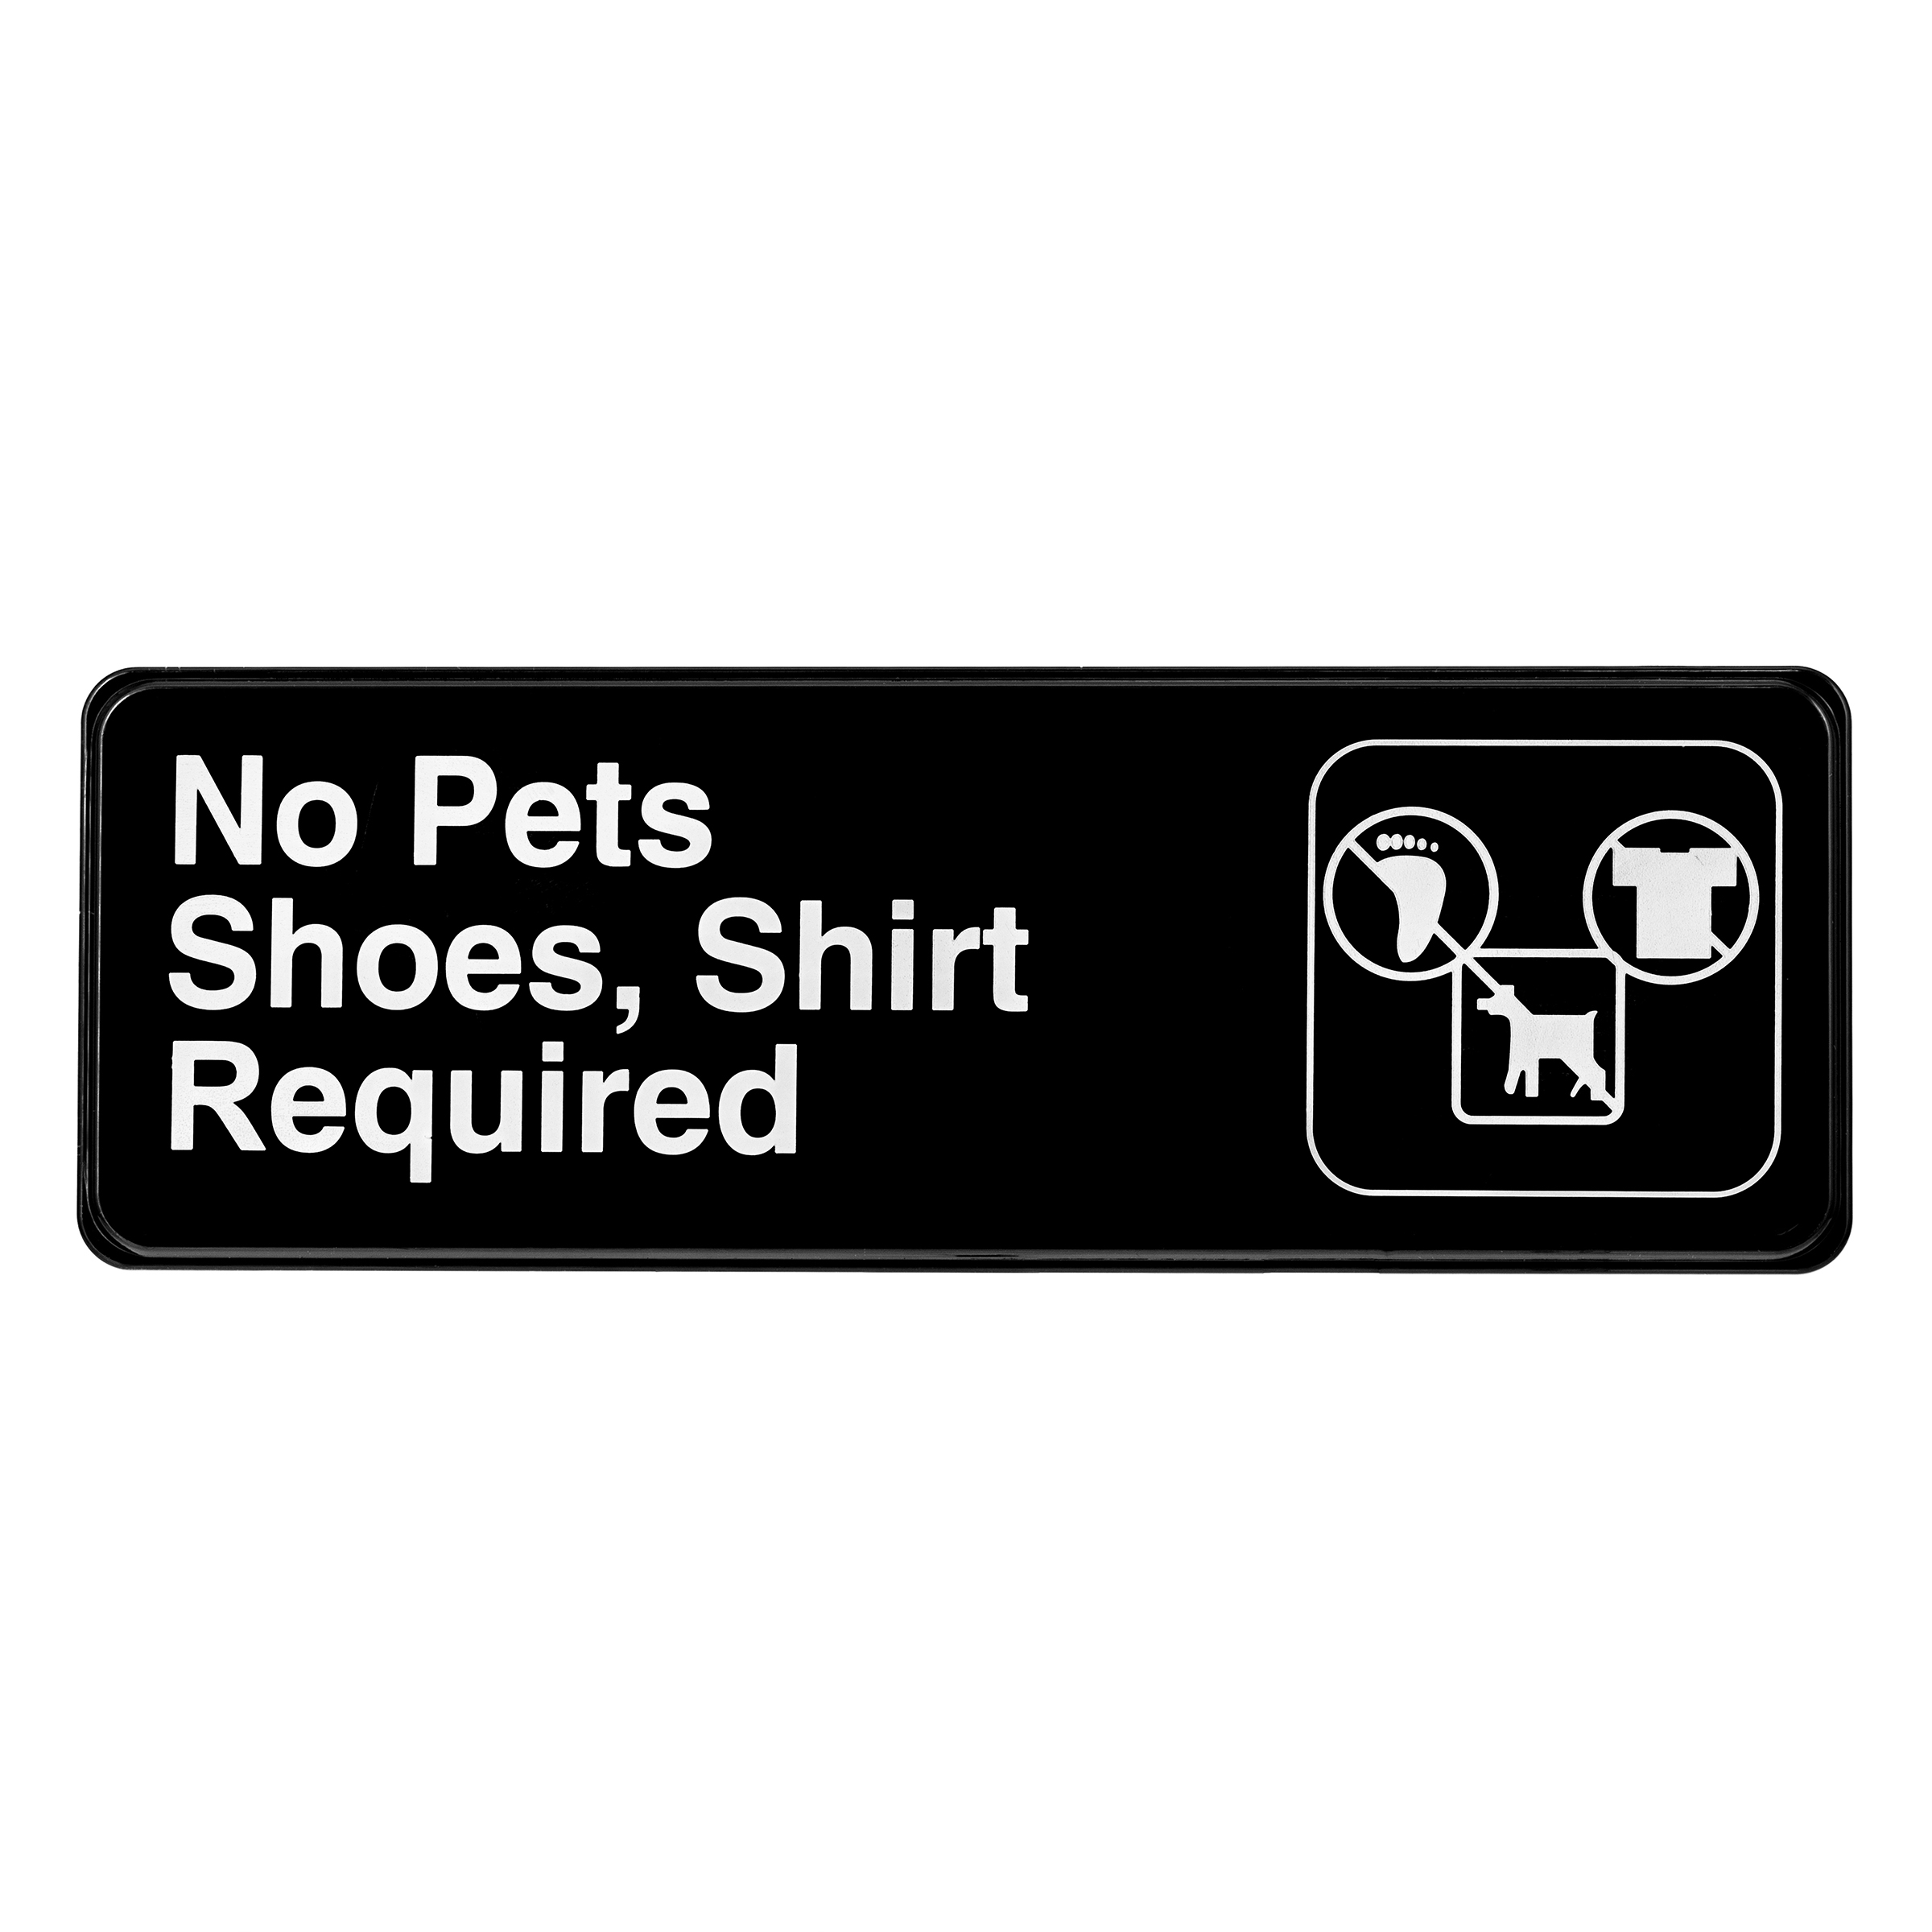 ALPINE INDUSTRIES NO PETS, SHOES, AND SHIRT REQUIRED SIGN, 3×9